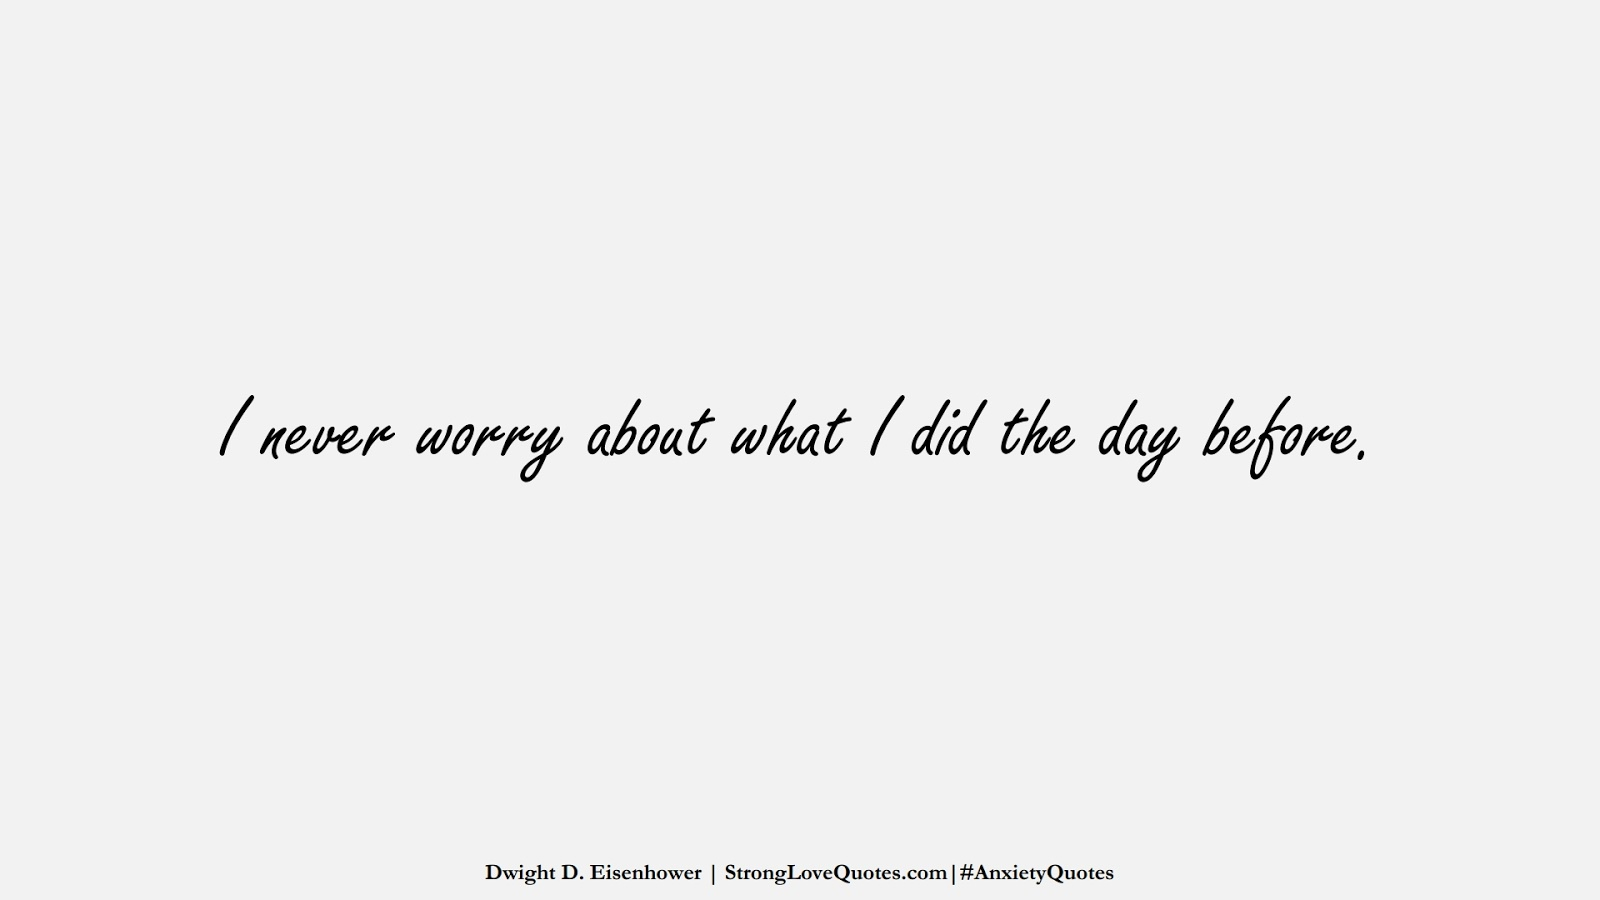 I never worry about what I did the day before. (Dwight D. Eisenhower);  #AnxietyQuotes